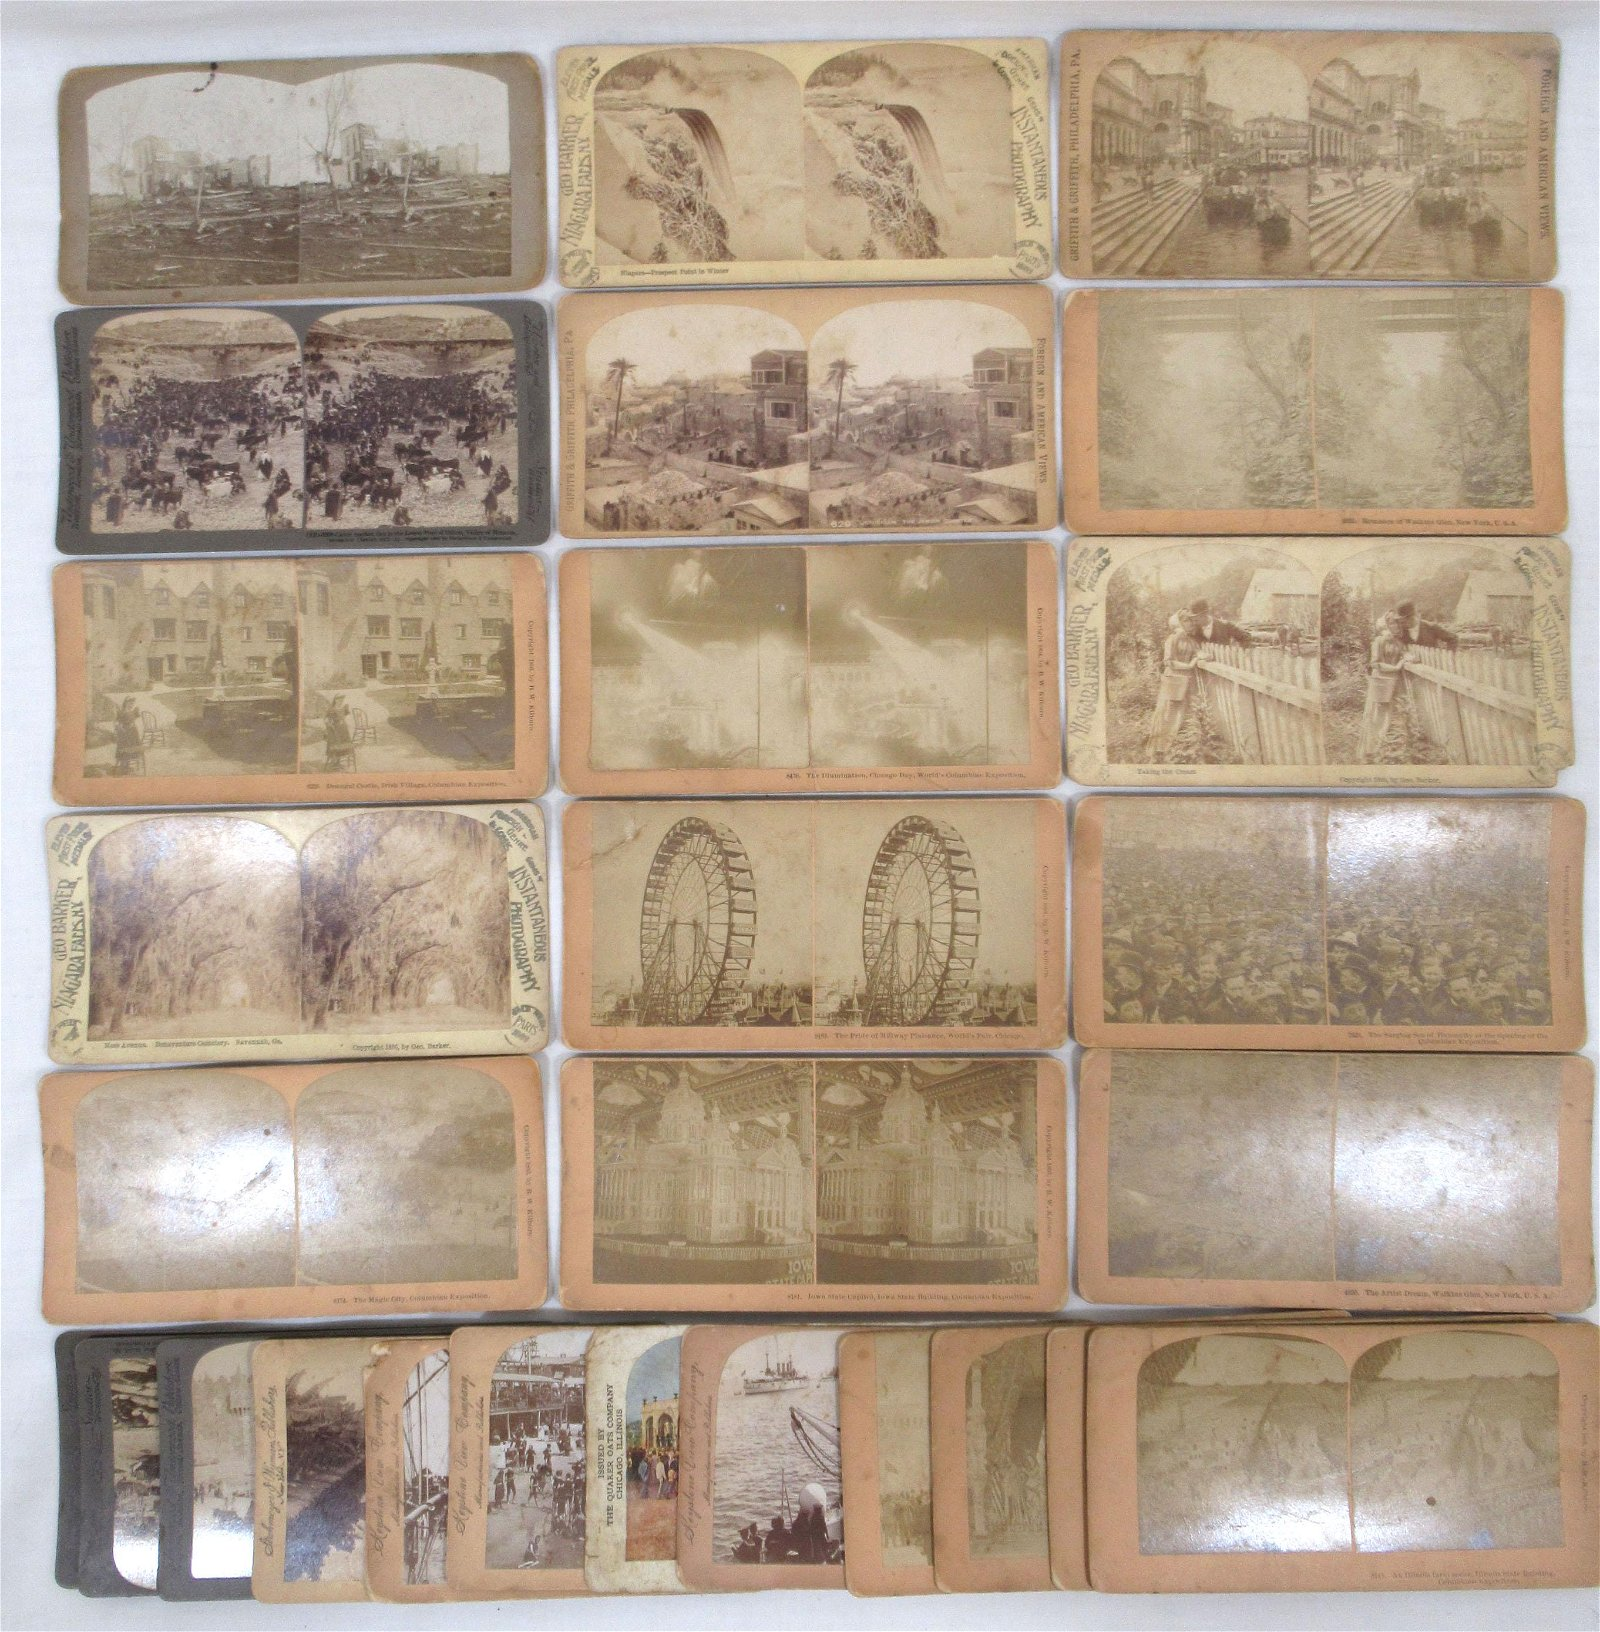 30 Stereoscopic View Cards